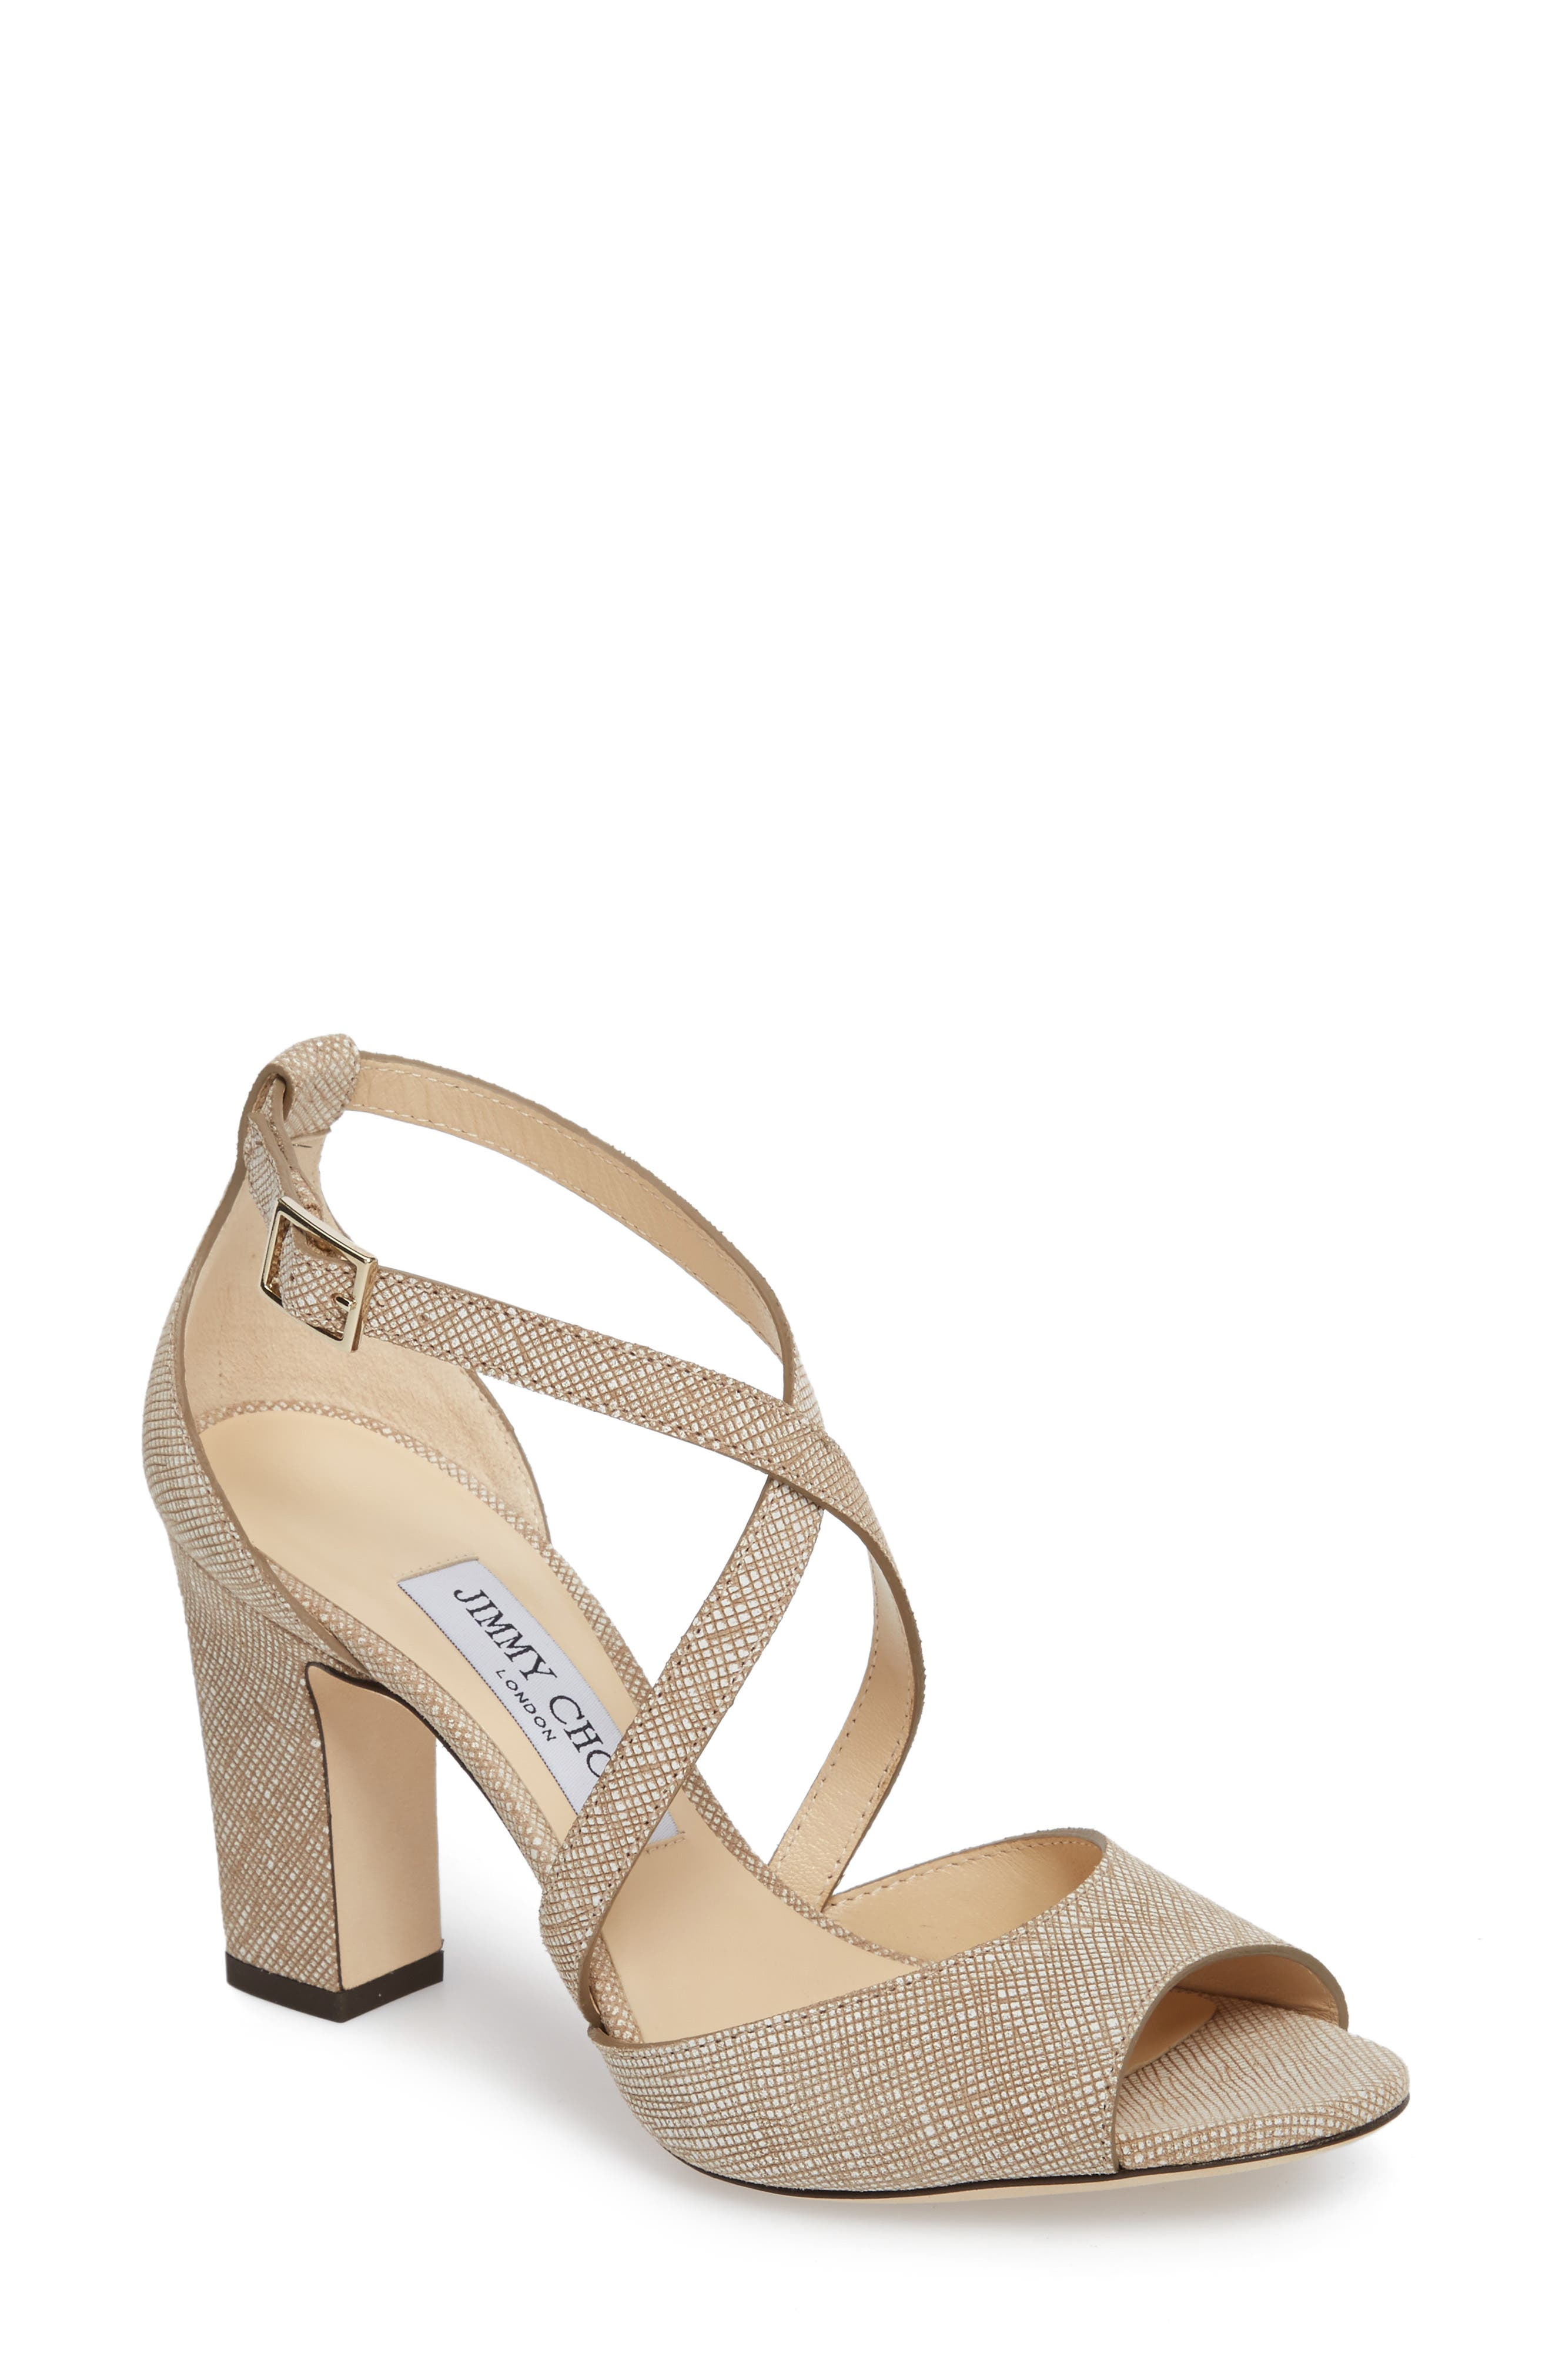 Carrie 85 suede sandals Jimmy Choo London rT8EhSn